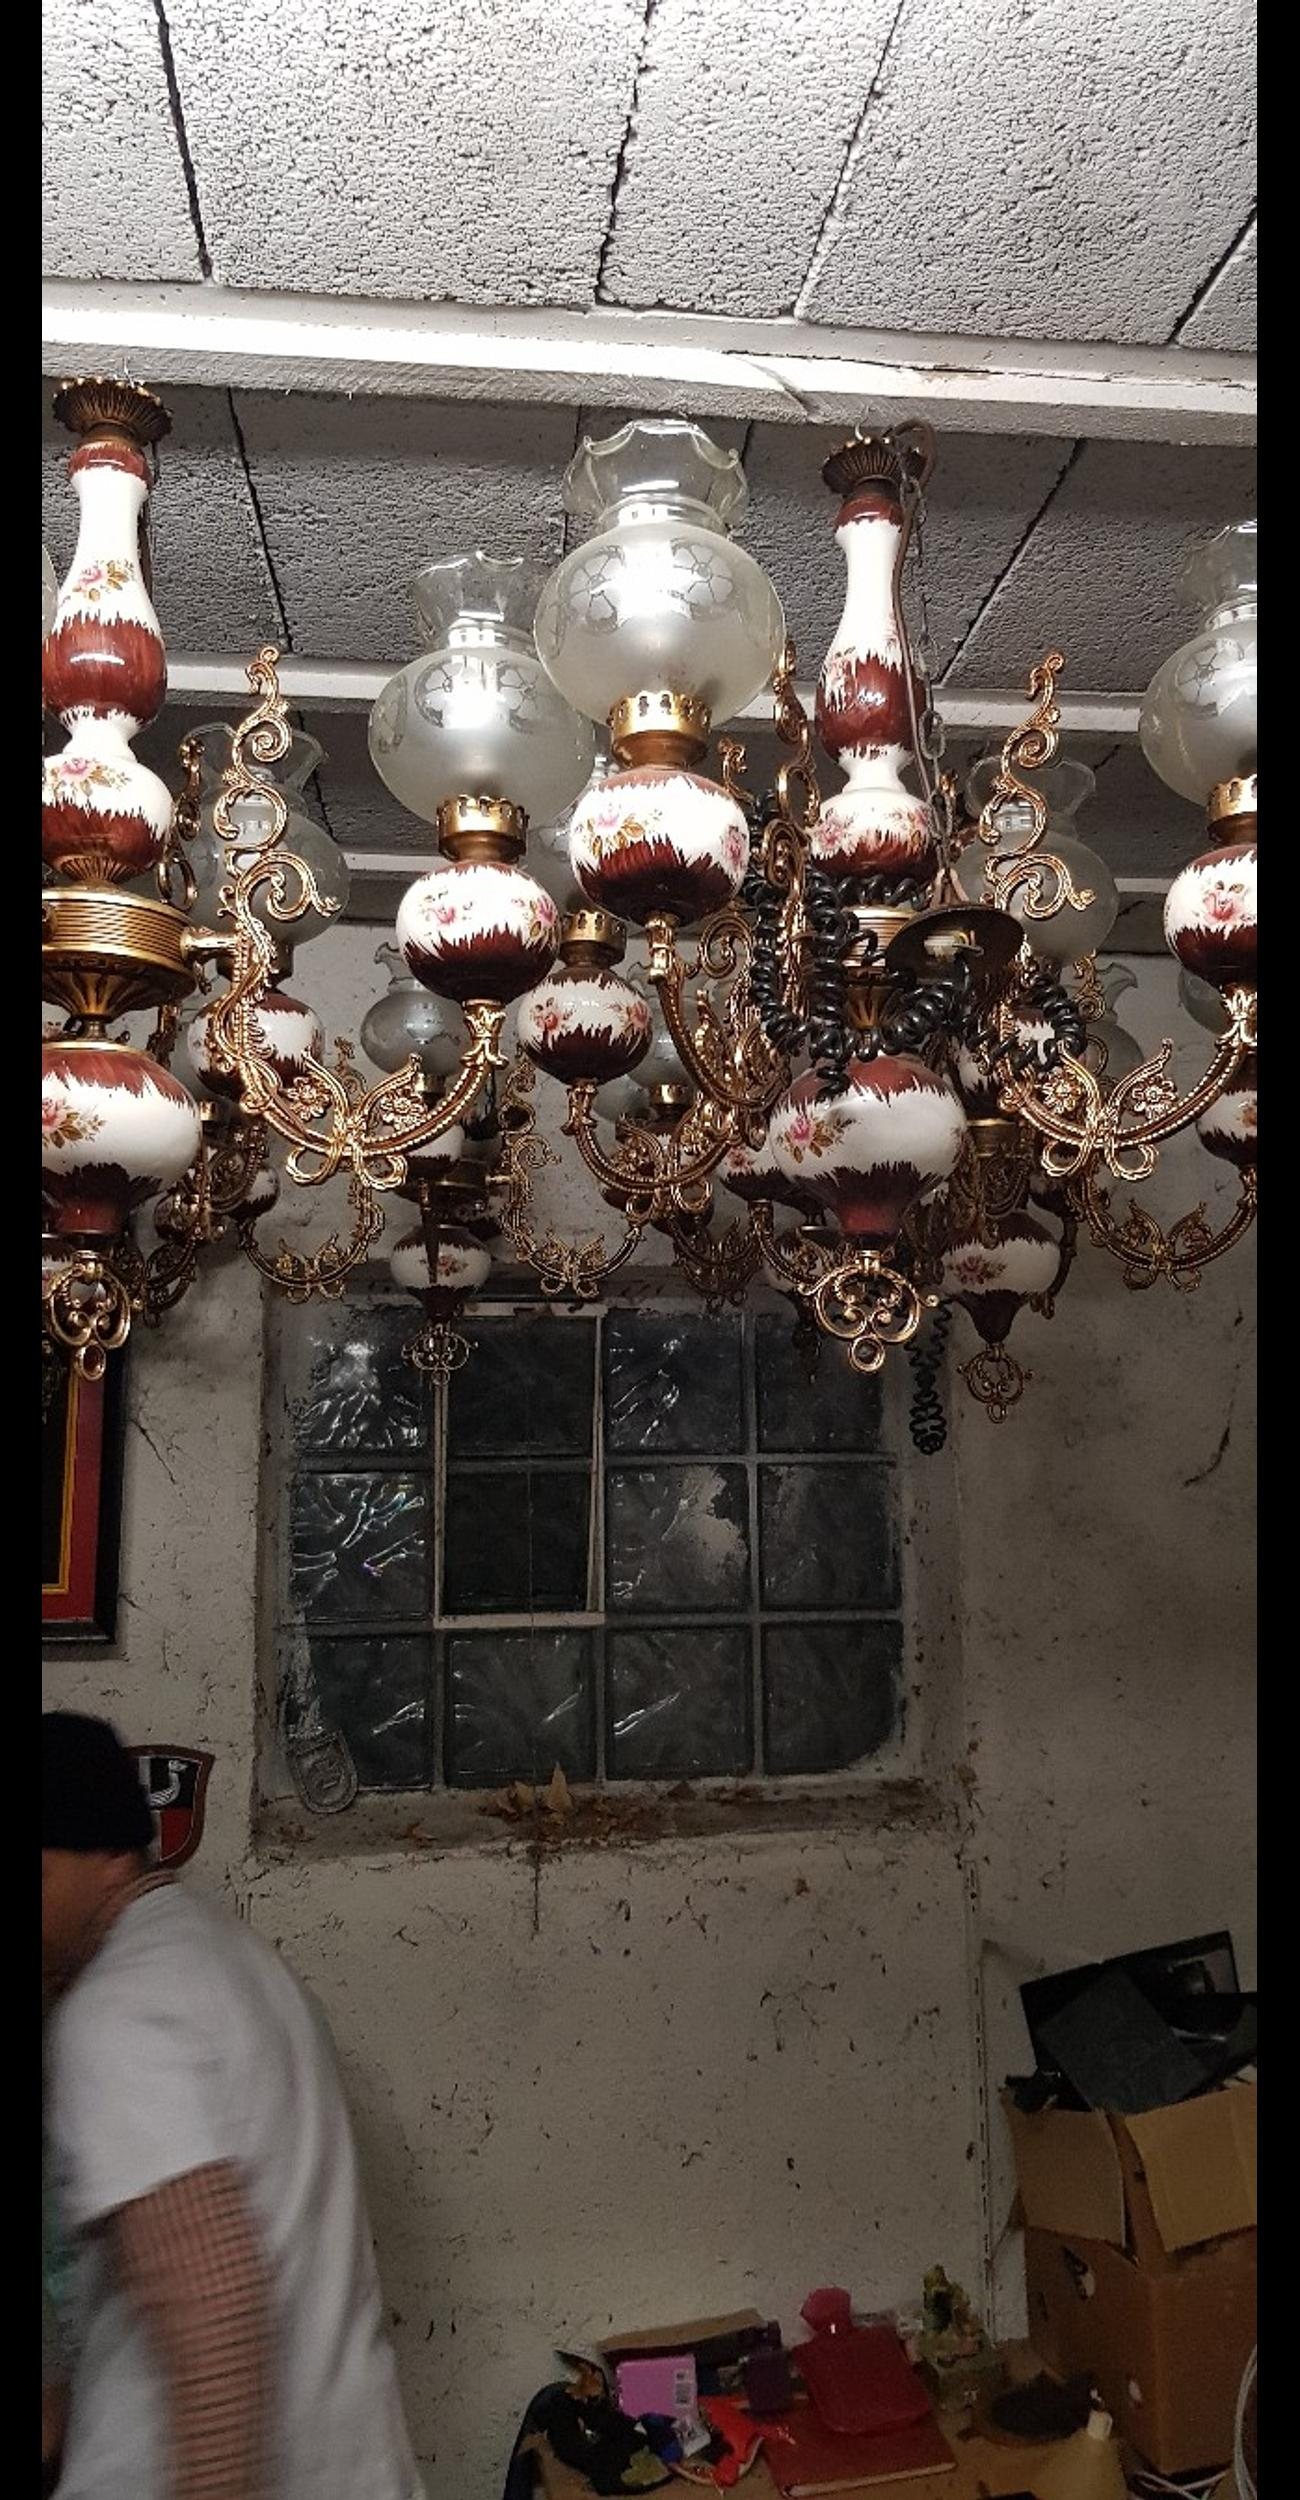 Wohnzimmer Lampe In 76137 Karlsruhe For 15 00 For Sale Shpock